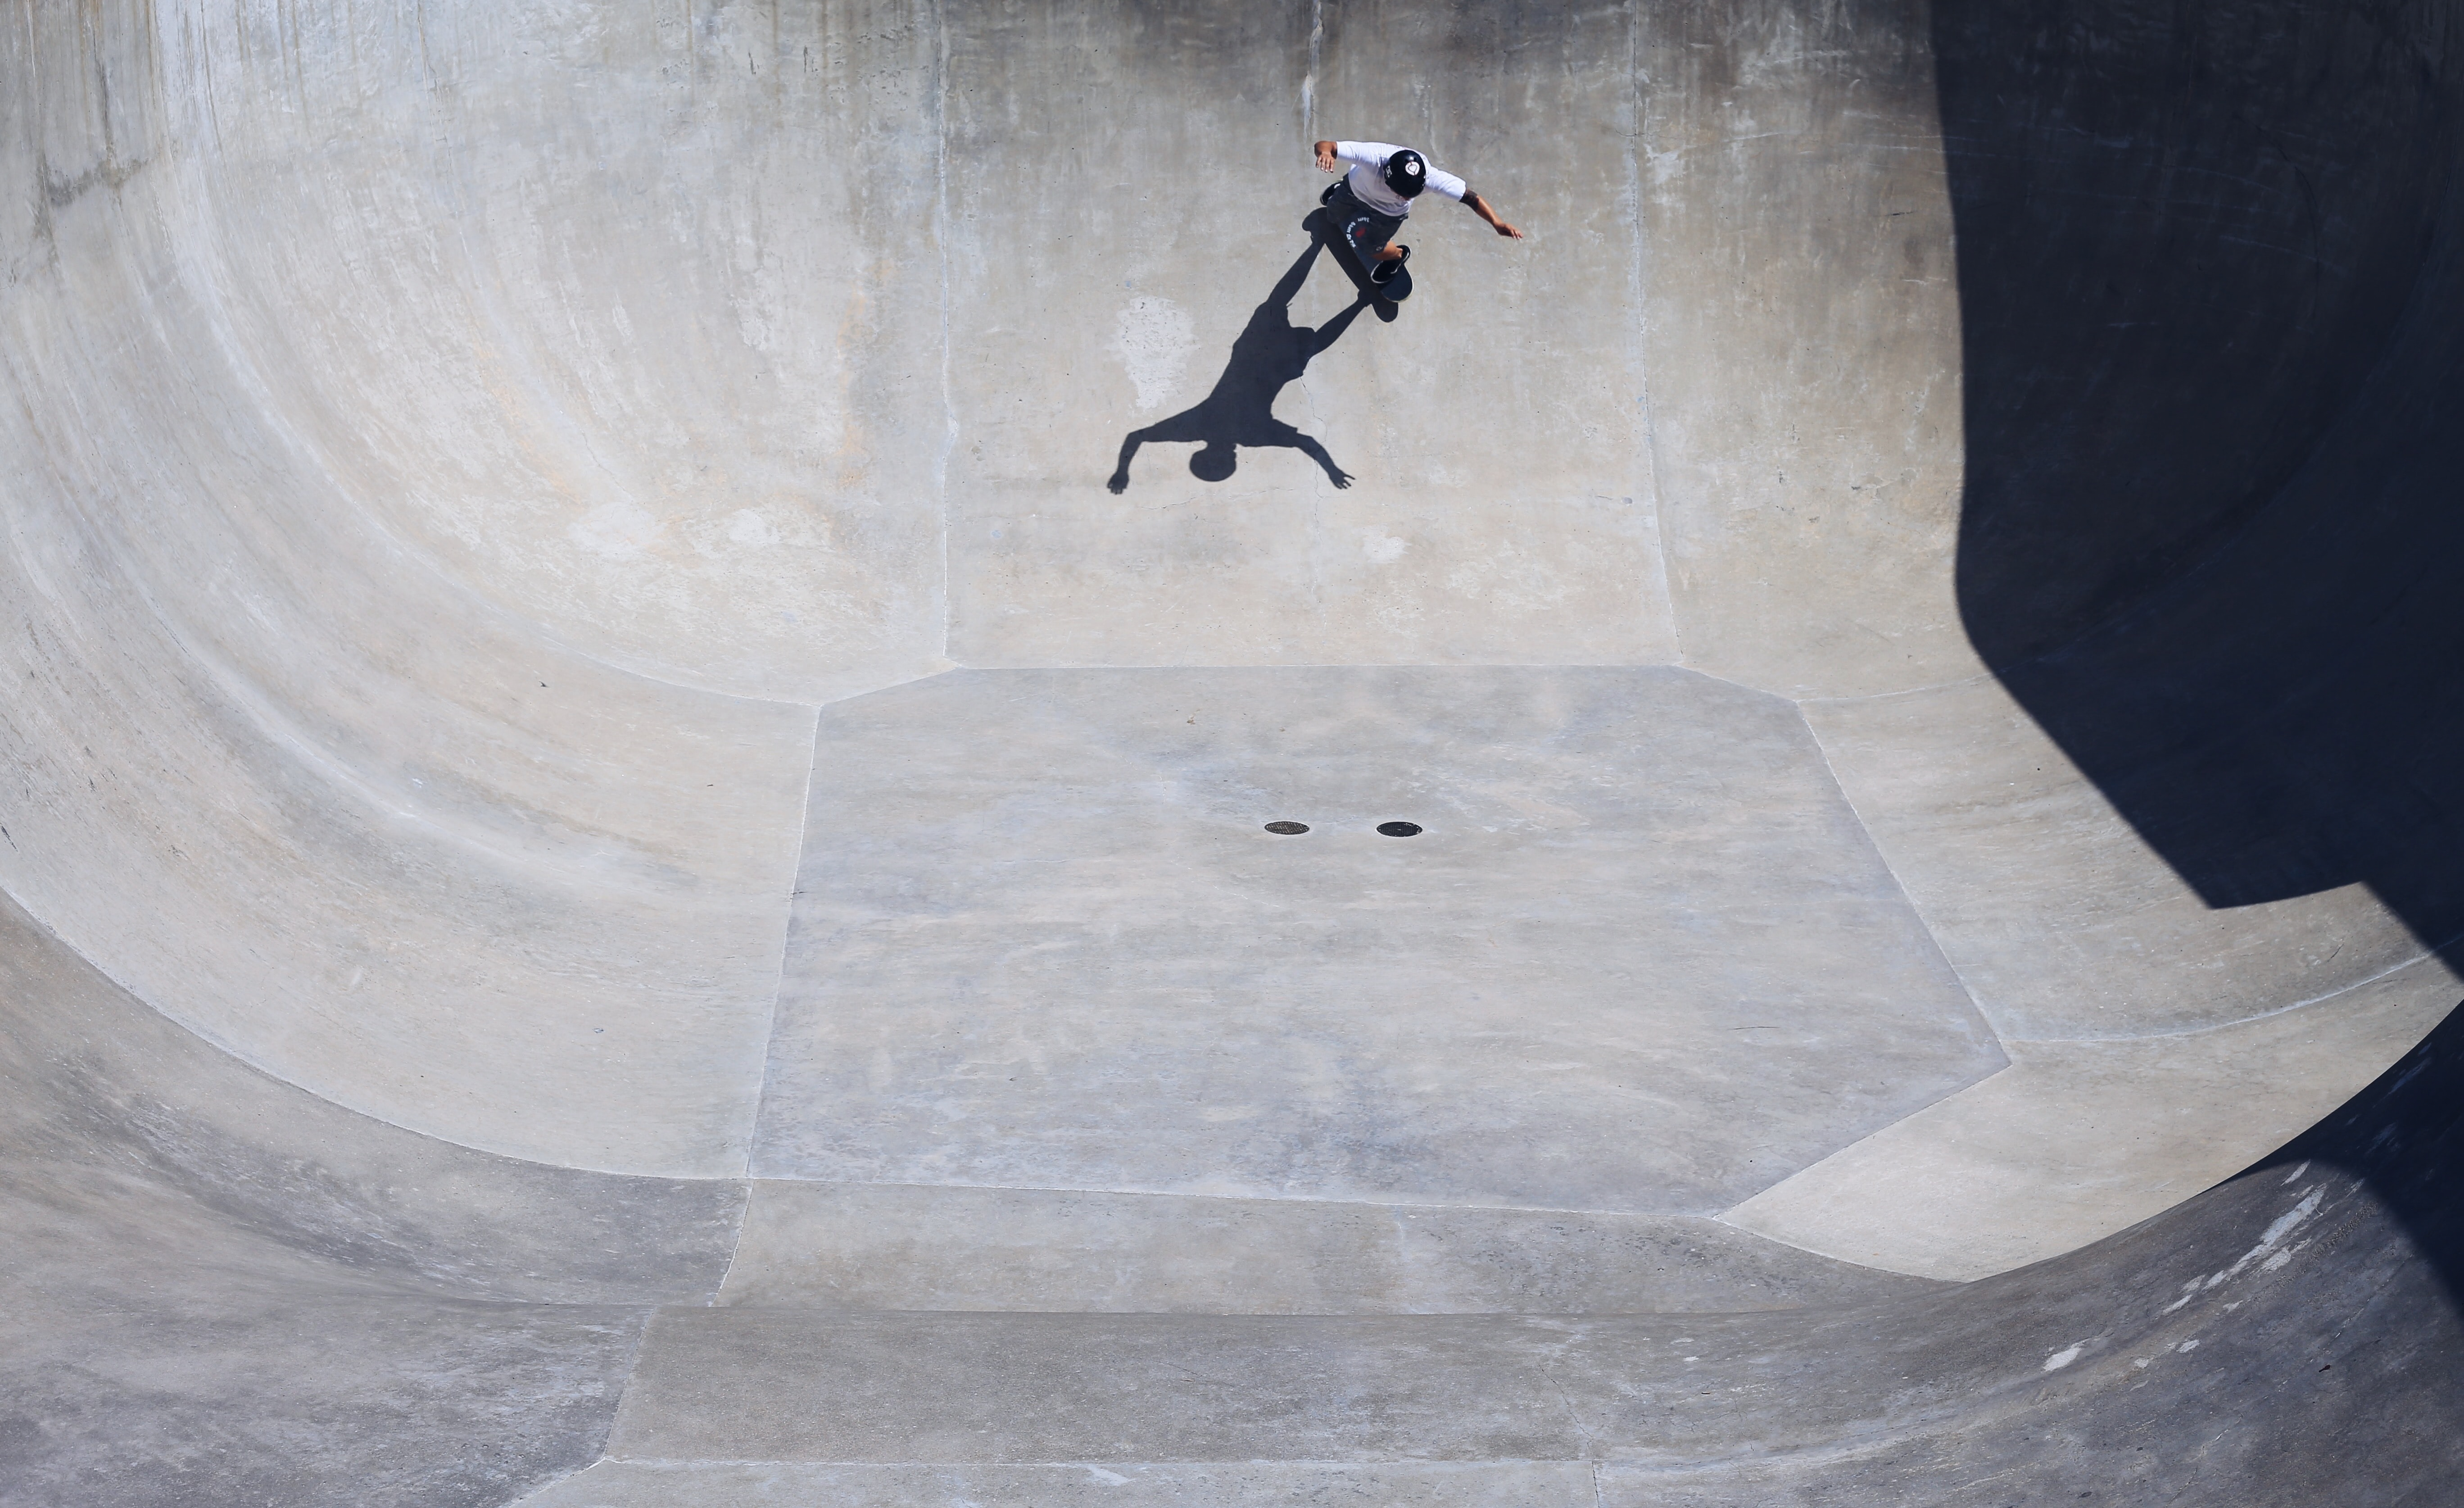 man wearing white t-shirt riding on a skateboard playing on the giant half bowl